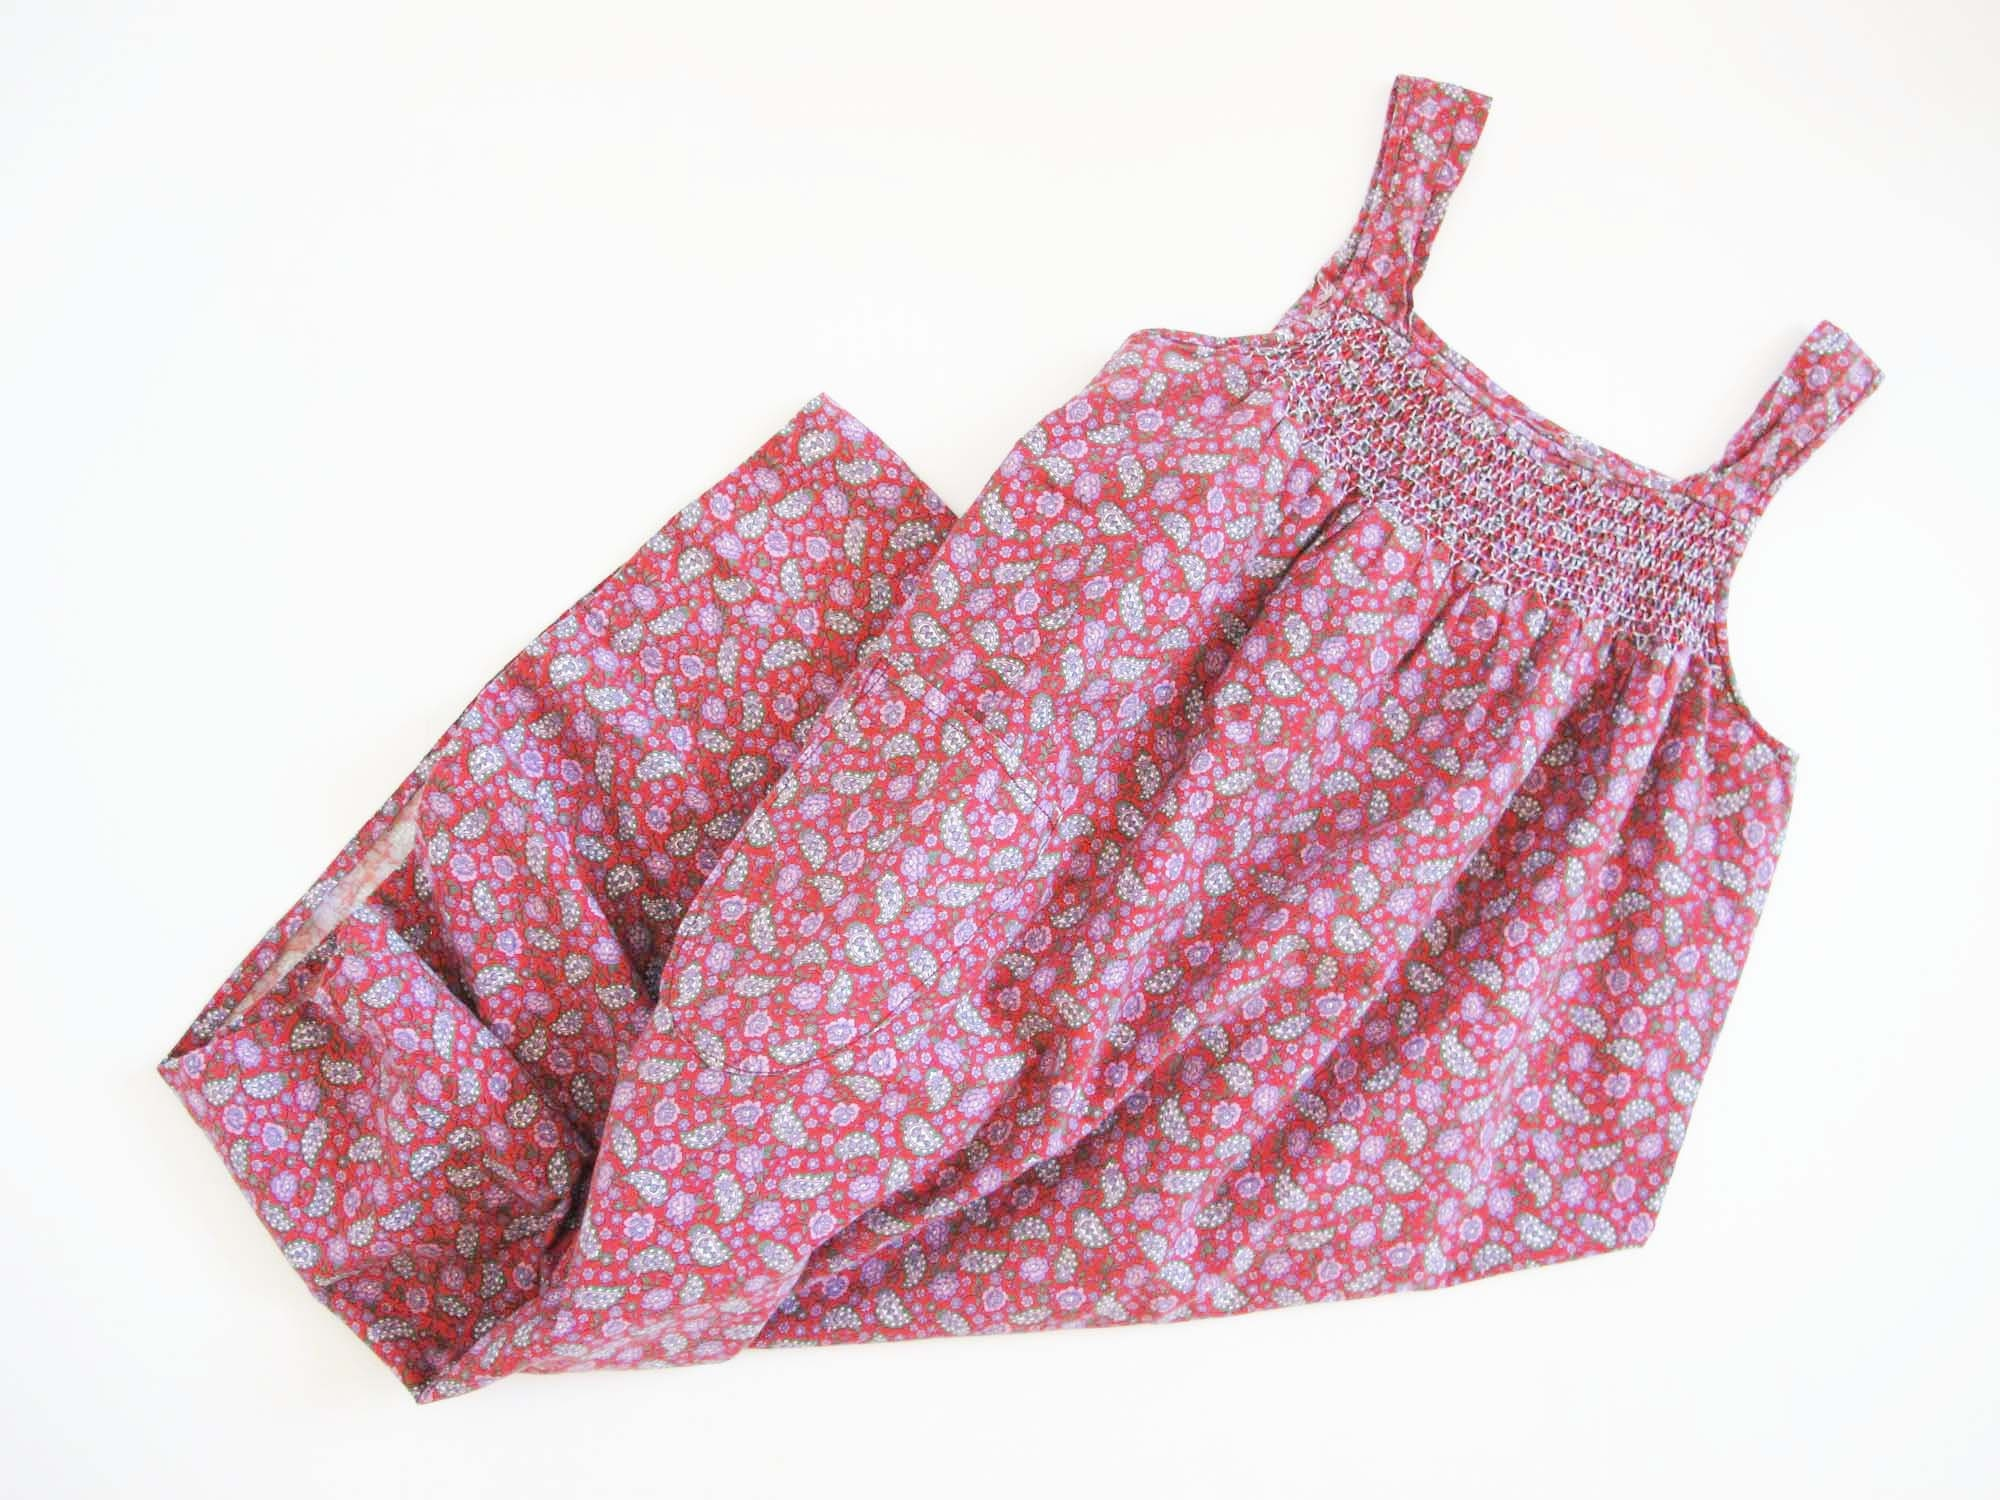 Vintage Aprons, Retro Aprons, Old Fashioned Aprons & Patterns Vintage 70S Mumu House Dress S L - 1970S Pink Red Floral Paisley Print Sundress Relaxed Fit Casual Day Spaghetti Strap Cotton $37.40 AT vintagedancer.com